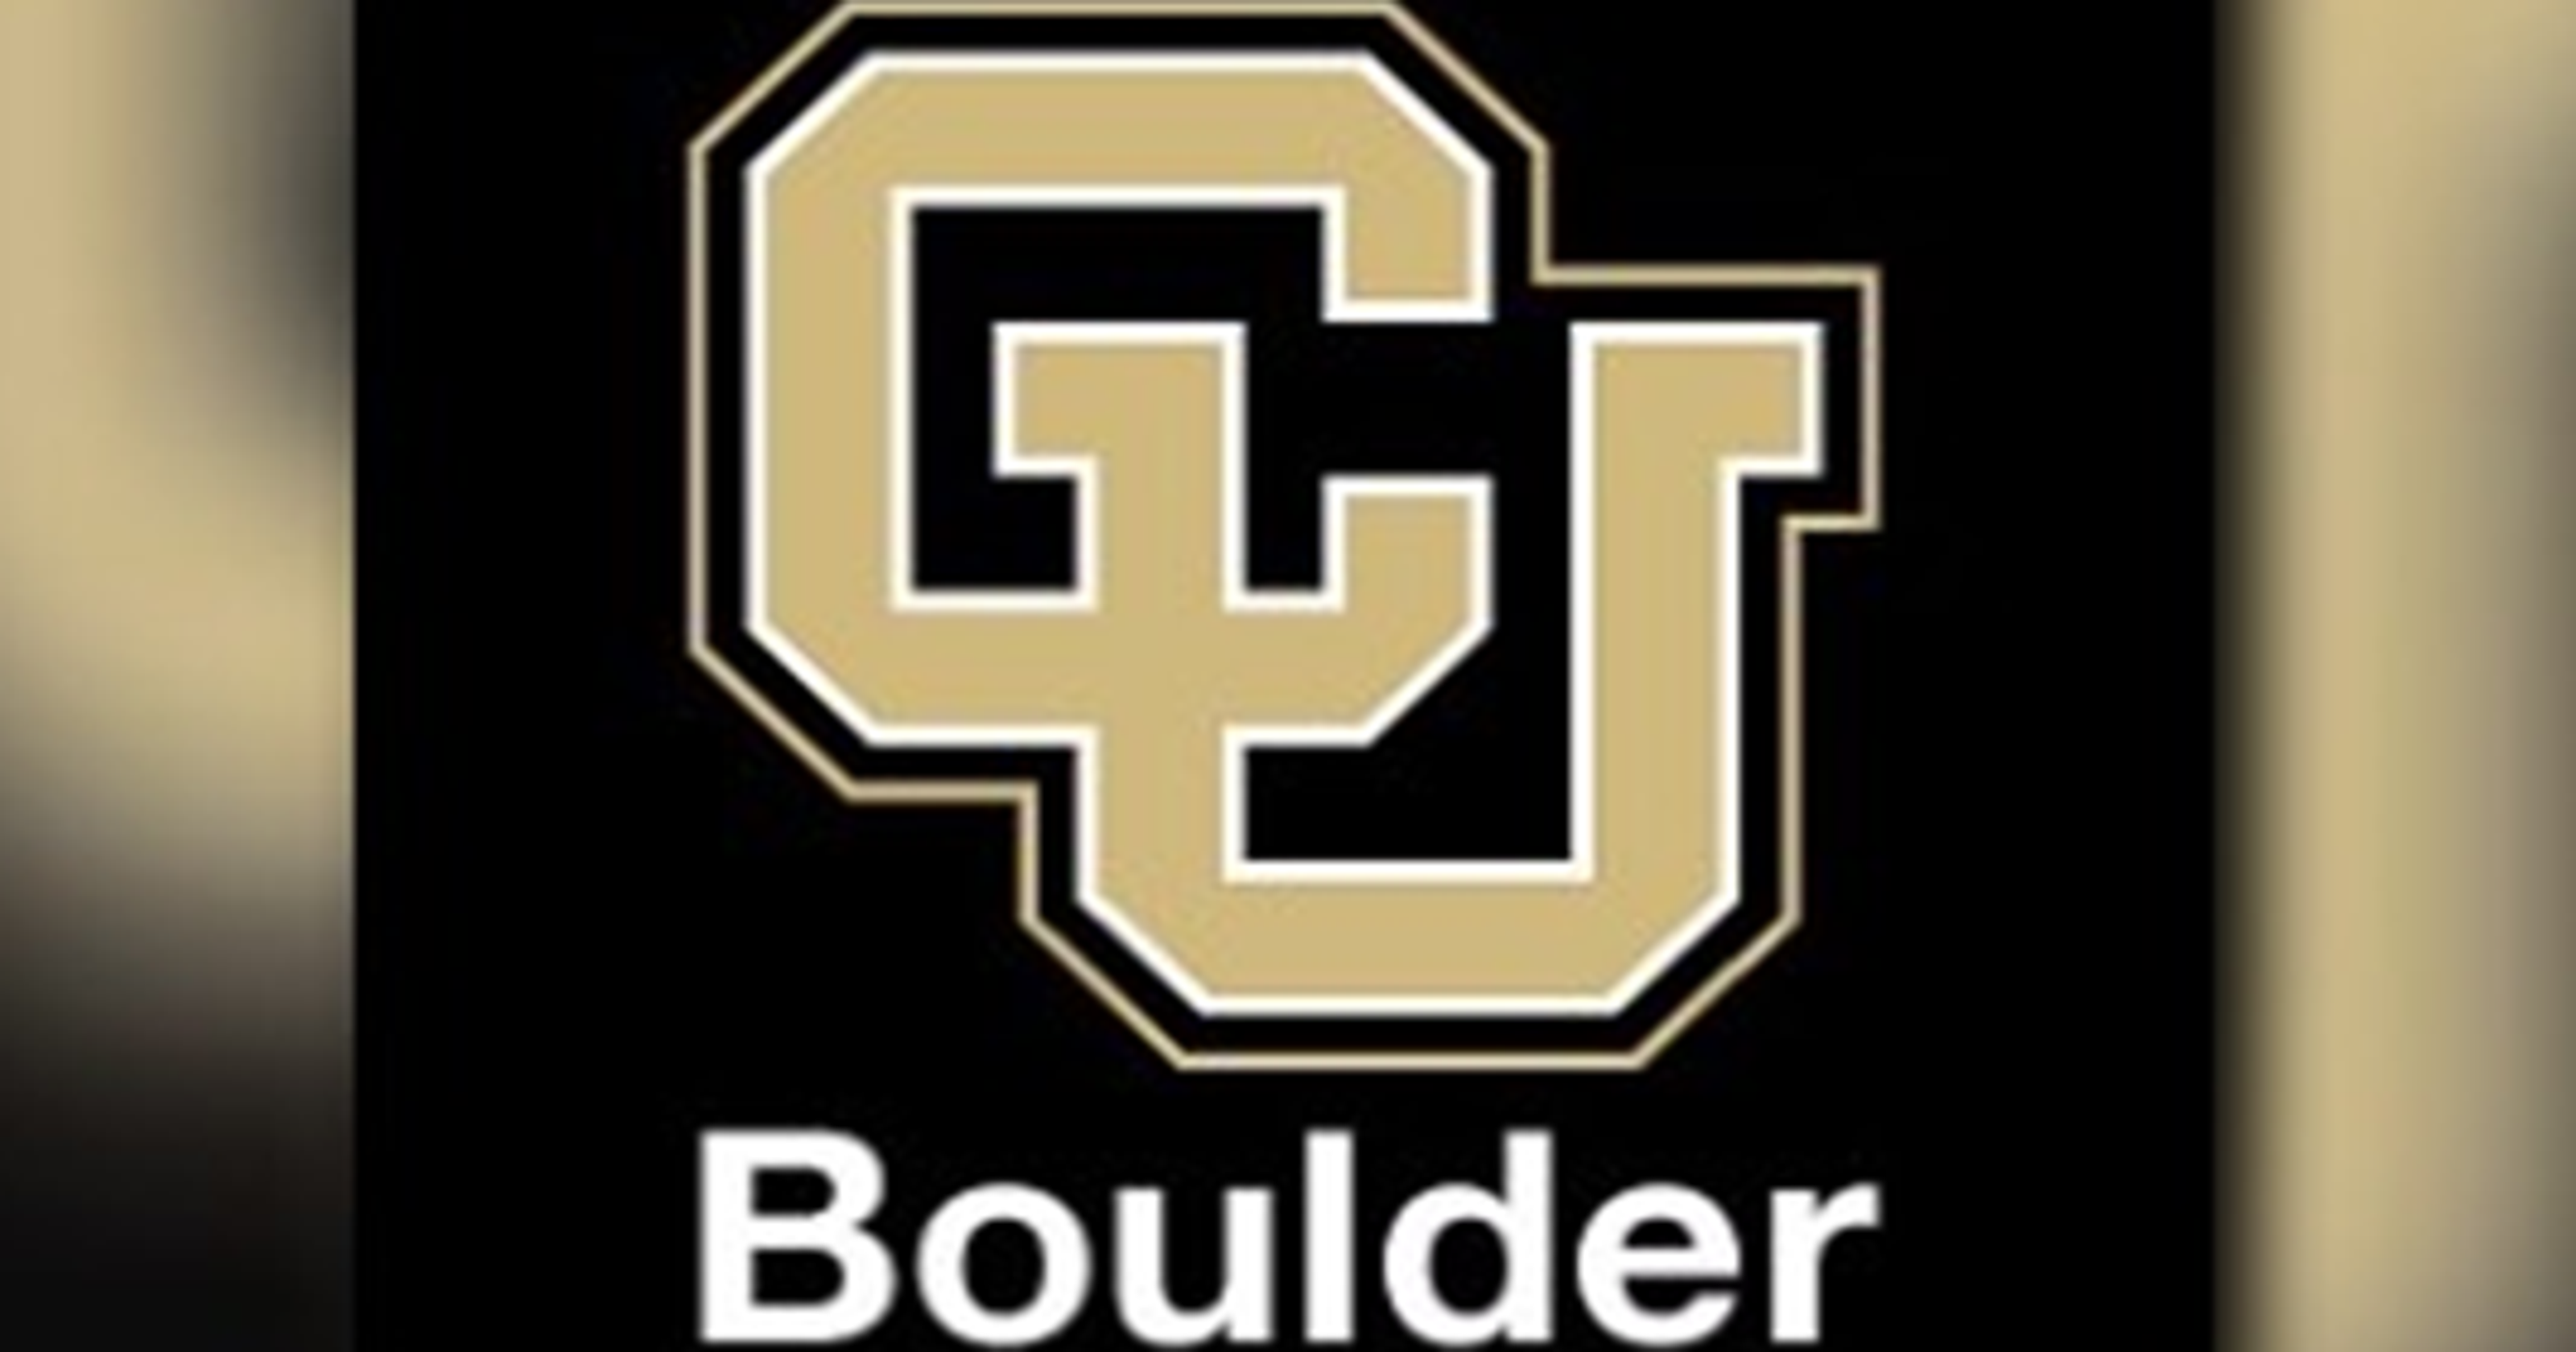 University of colorado boulder wont use new evidence standard in university of colorado boulder wont use new evidence standard in sex assaults reheart Image collections